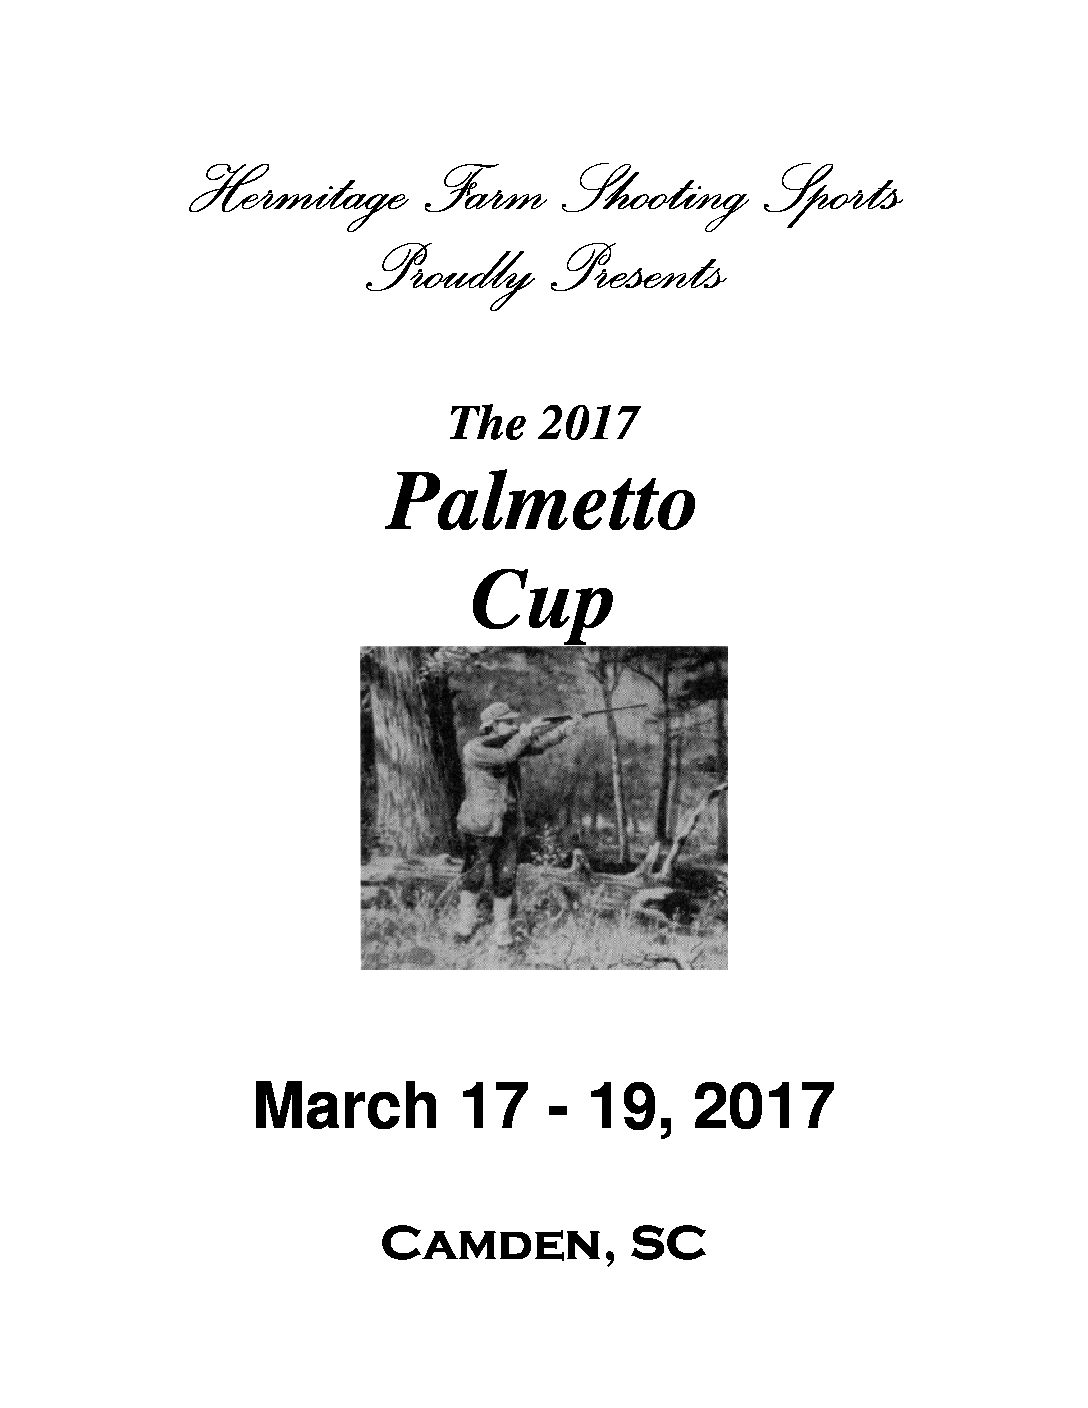 http://www.hfsporting.com/wp-content/uploads/2017/01/Palmetto-Cup-2017.jpg